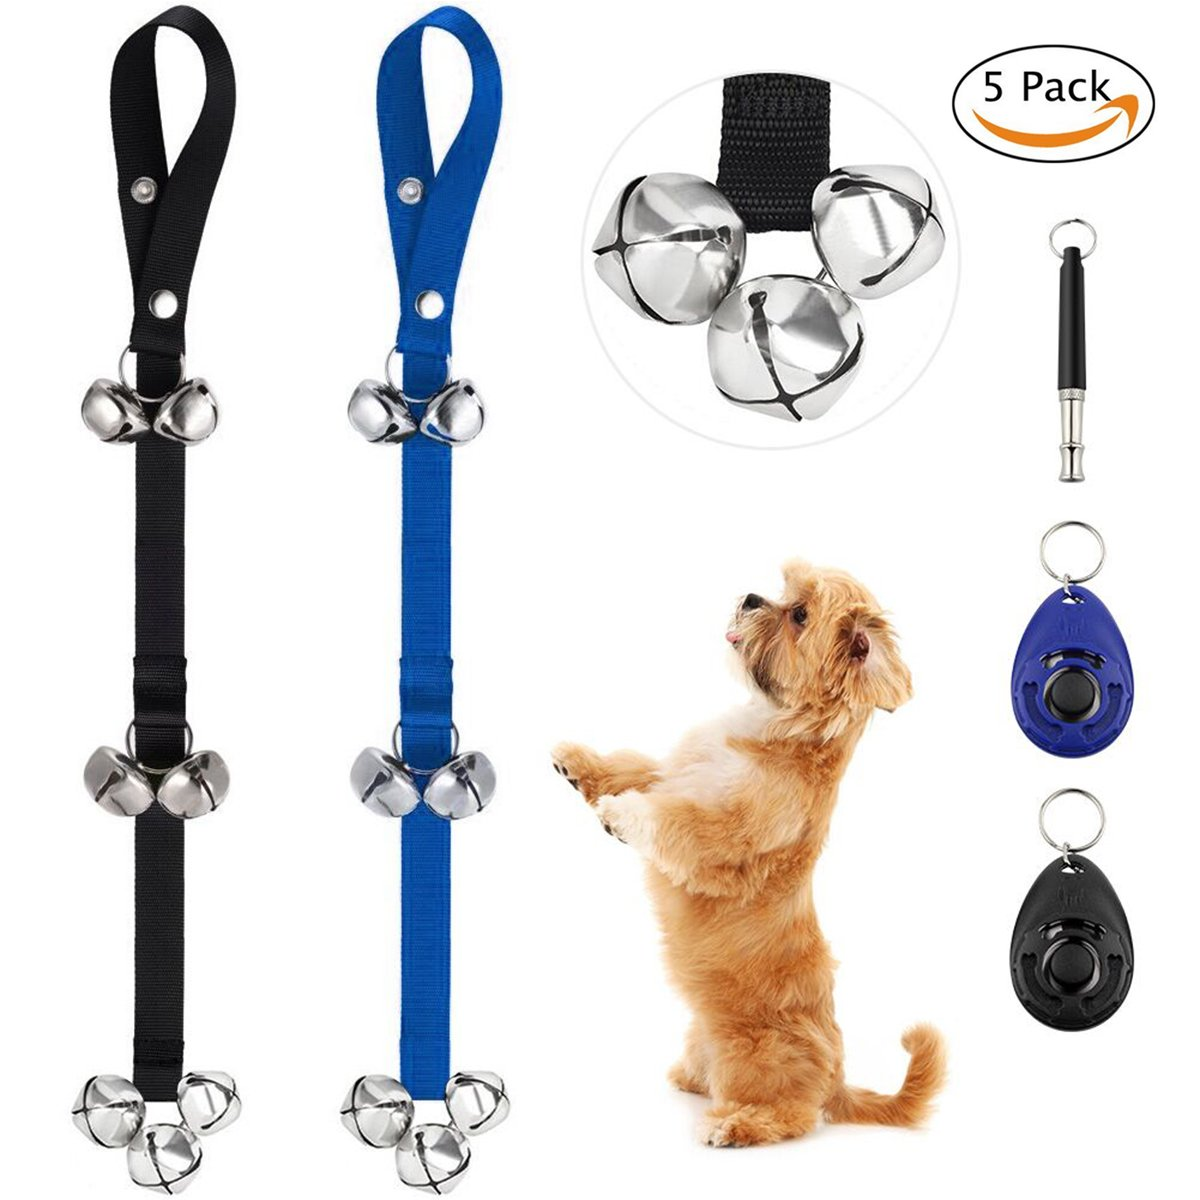 Rainbowee Dog Doorbells for Puppy Potty Training Pack of 2 Adjustable Potty Bell with 7 Extra Large 1.4'' Loud Bells for Dog Training & Housebreaking include 2 Clickers and One Dog Whistle by Rainbowee